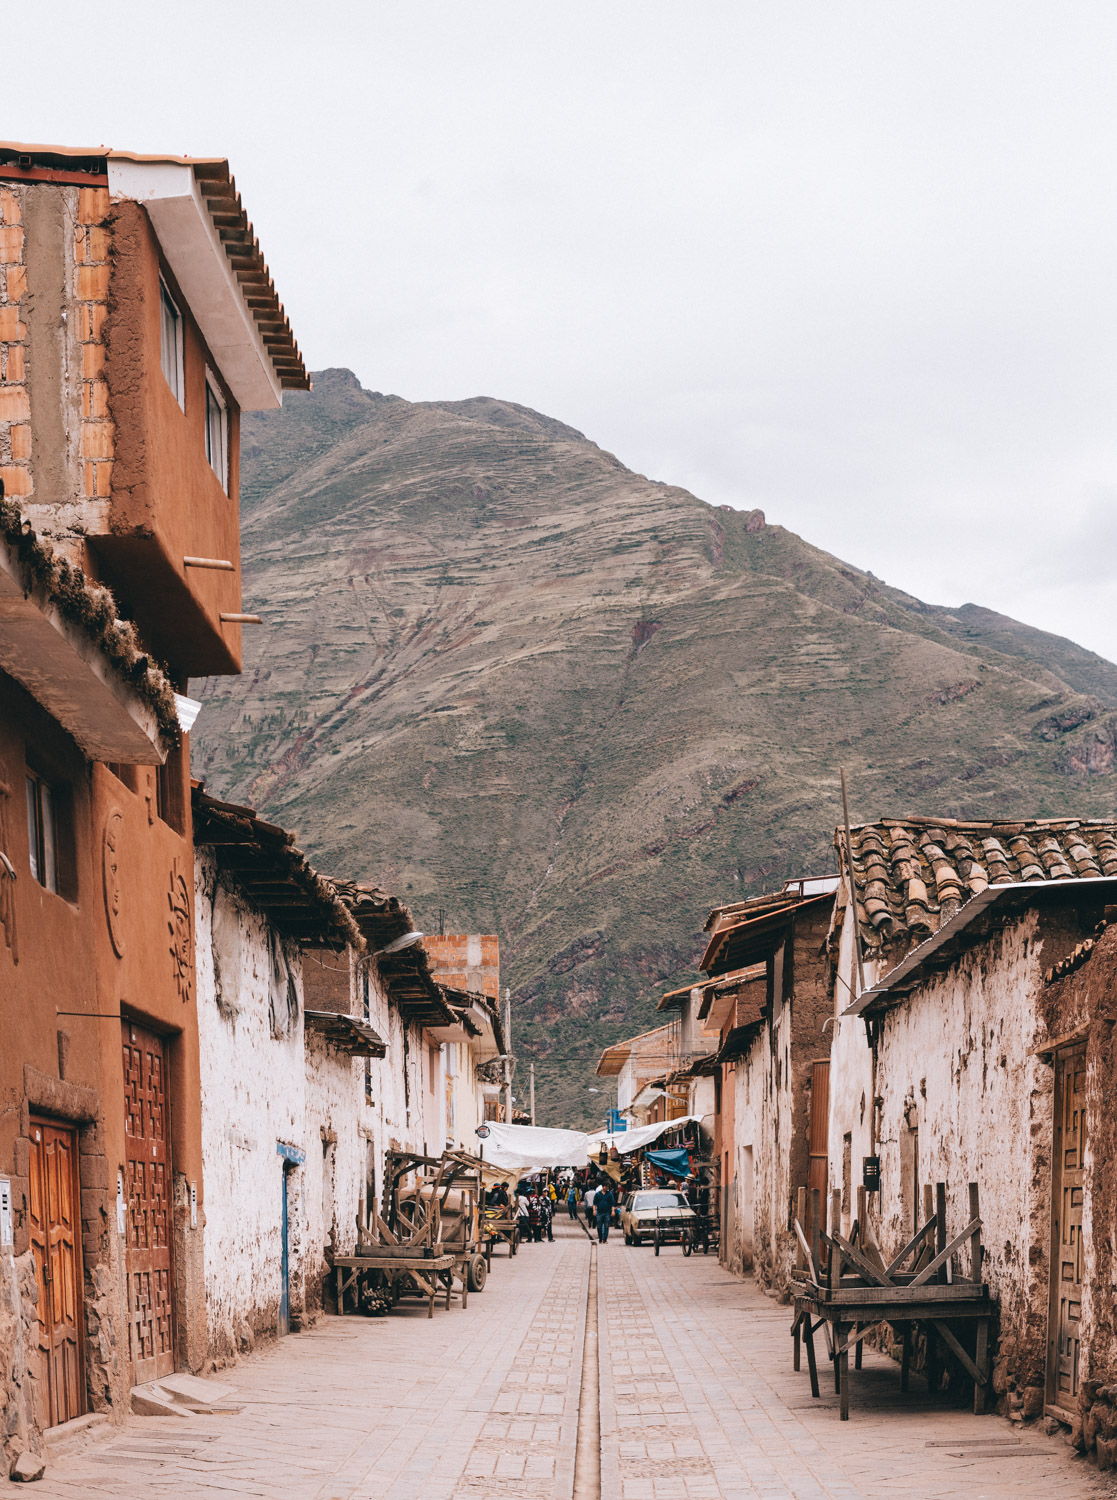 How to get to Pisac from Cusco